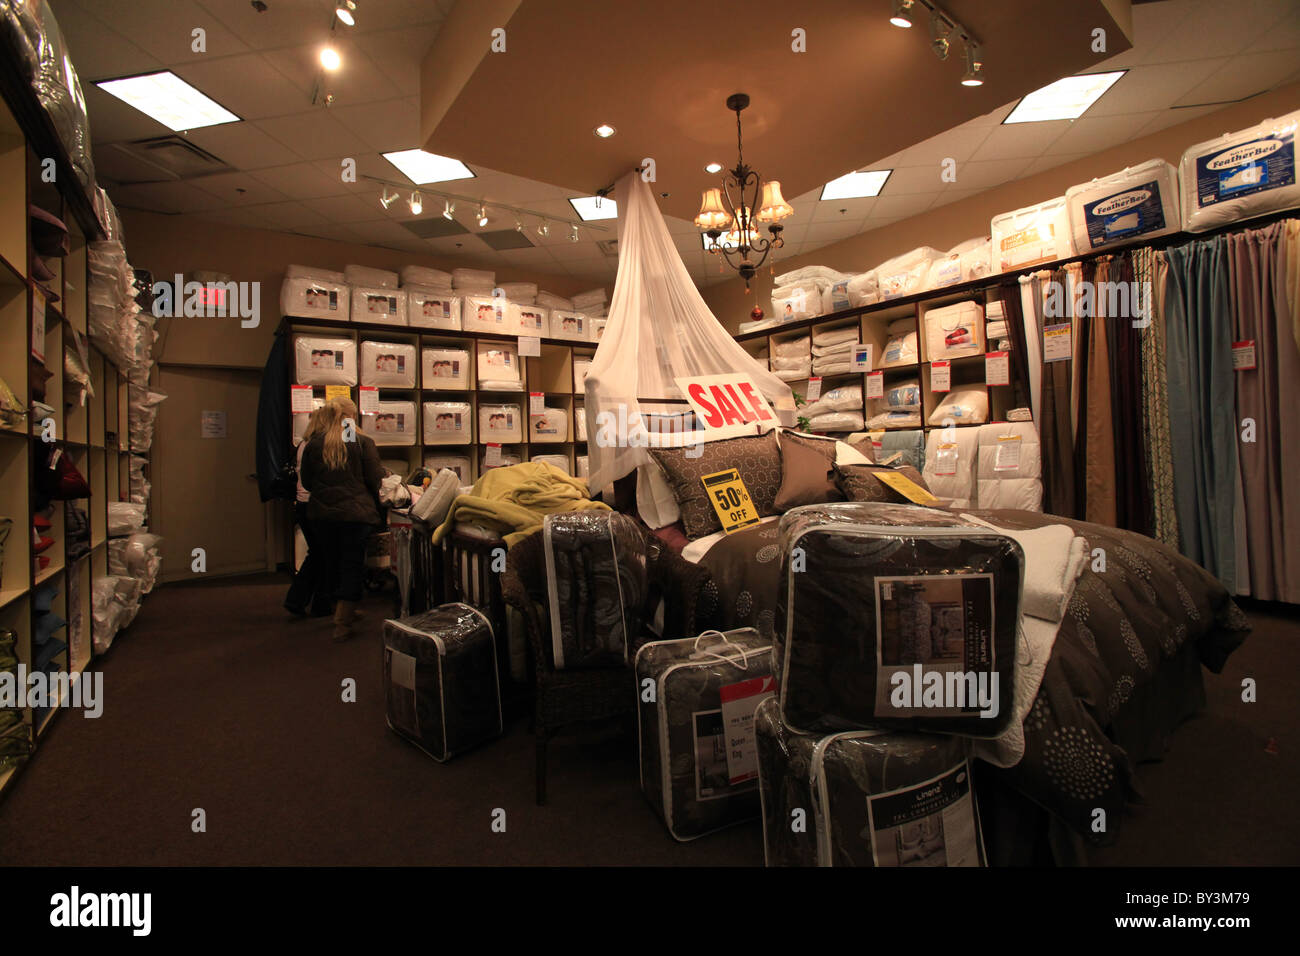 Quilts and pillows for sale during Boxing week in Quilts etc store ... : quilts etc - Adamdwight.com